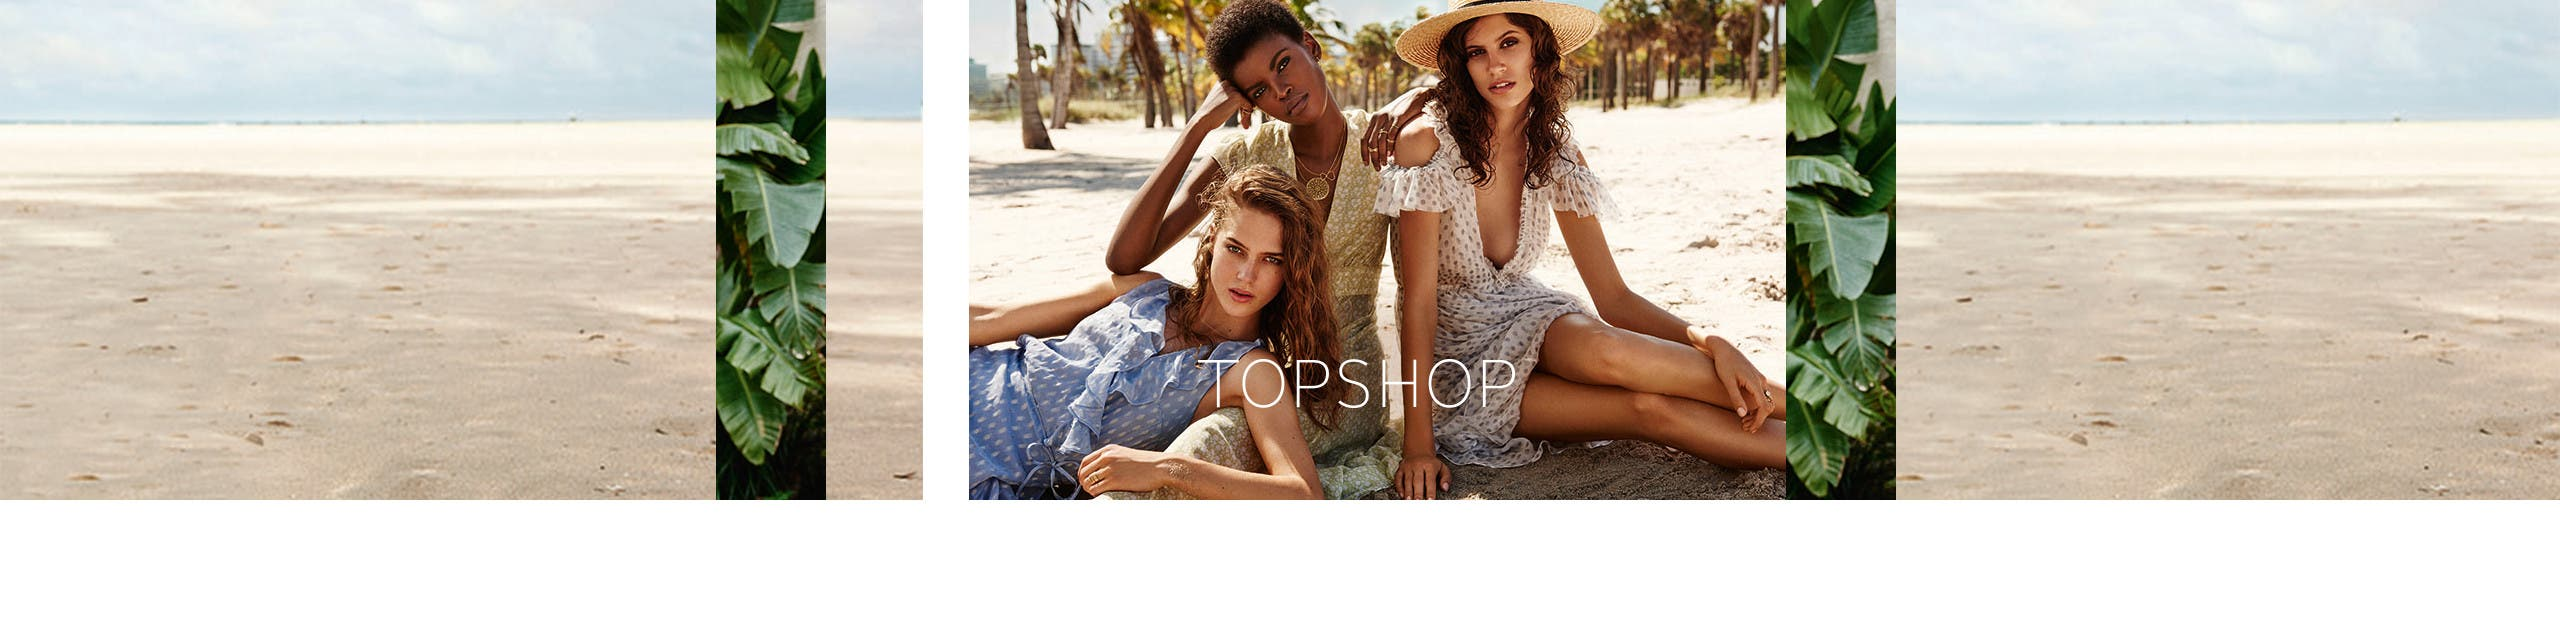 Topshop for women.